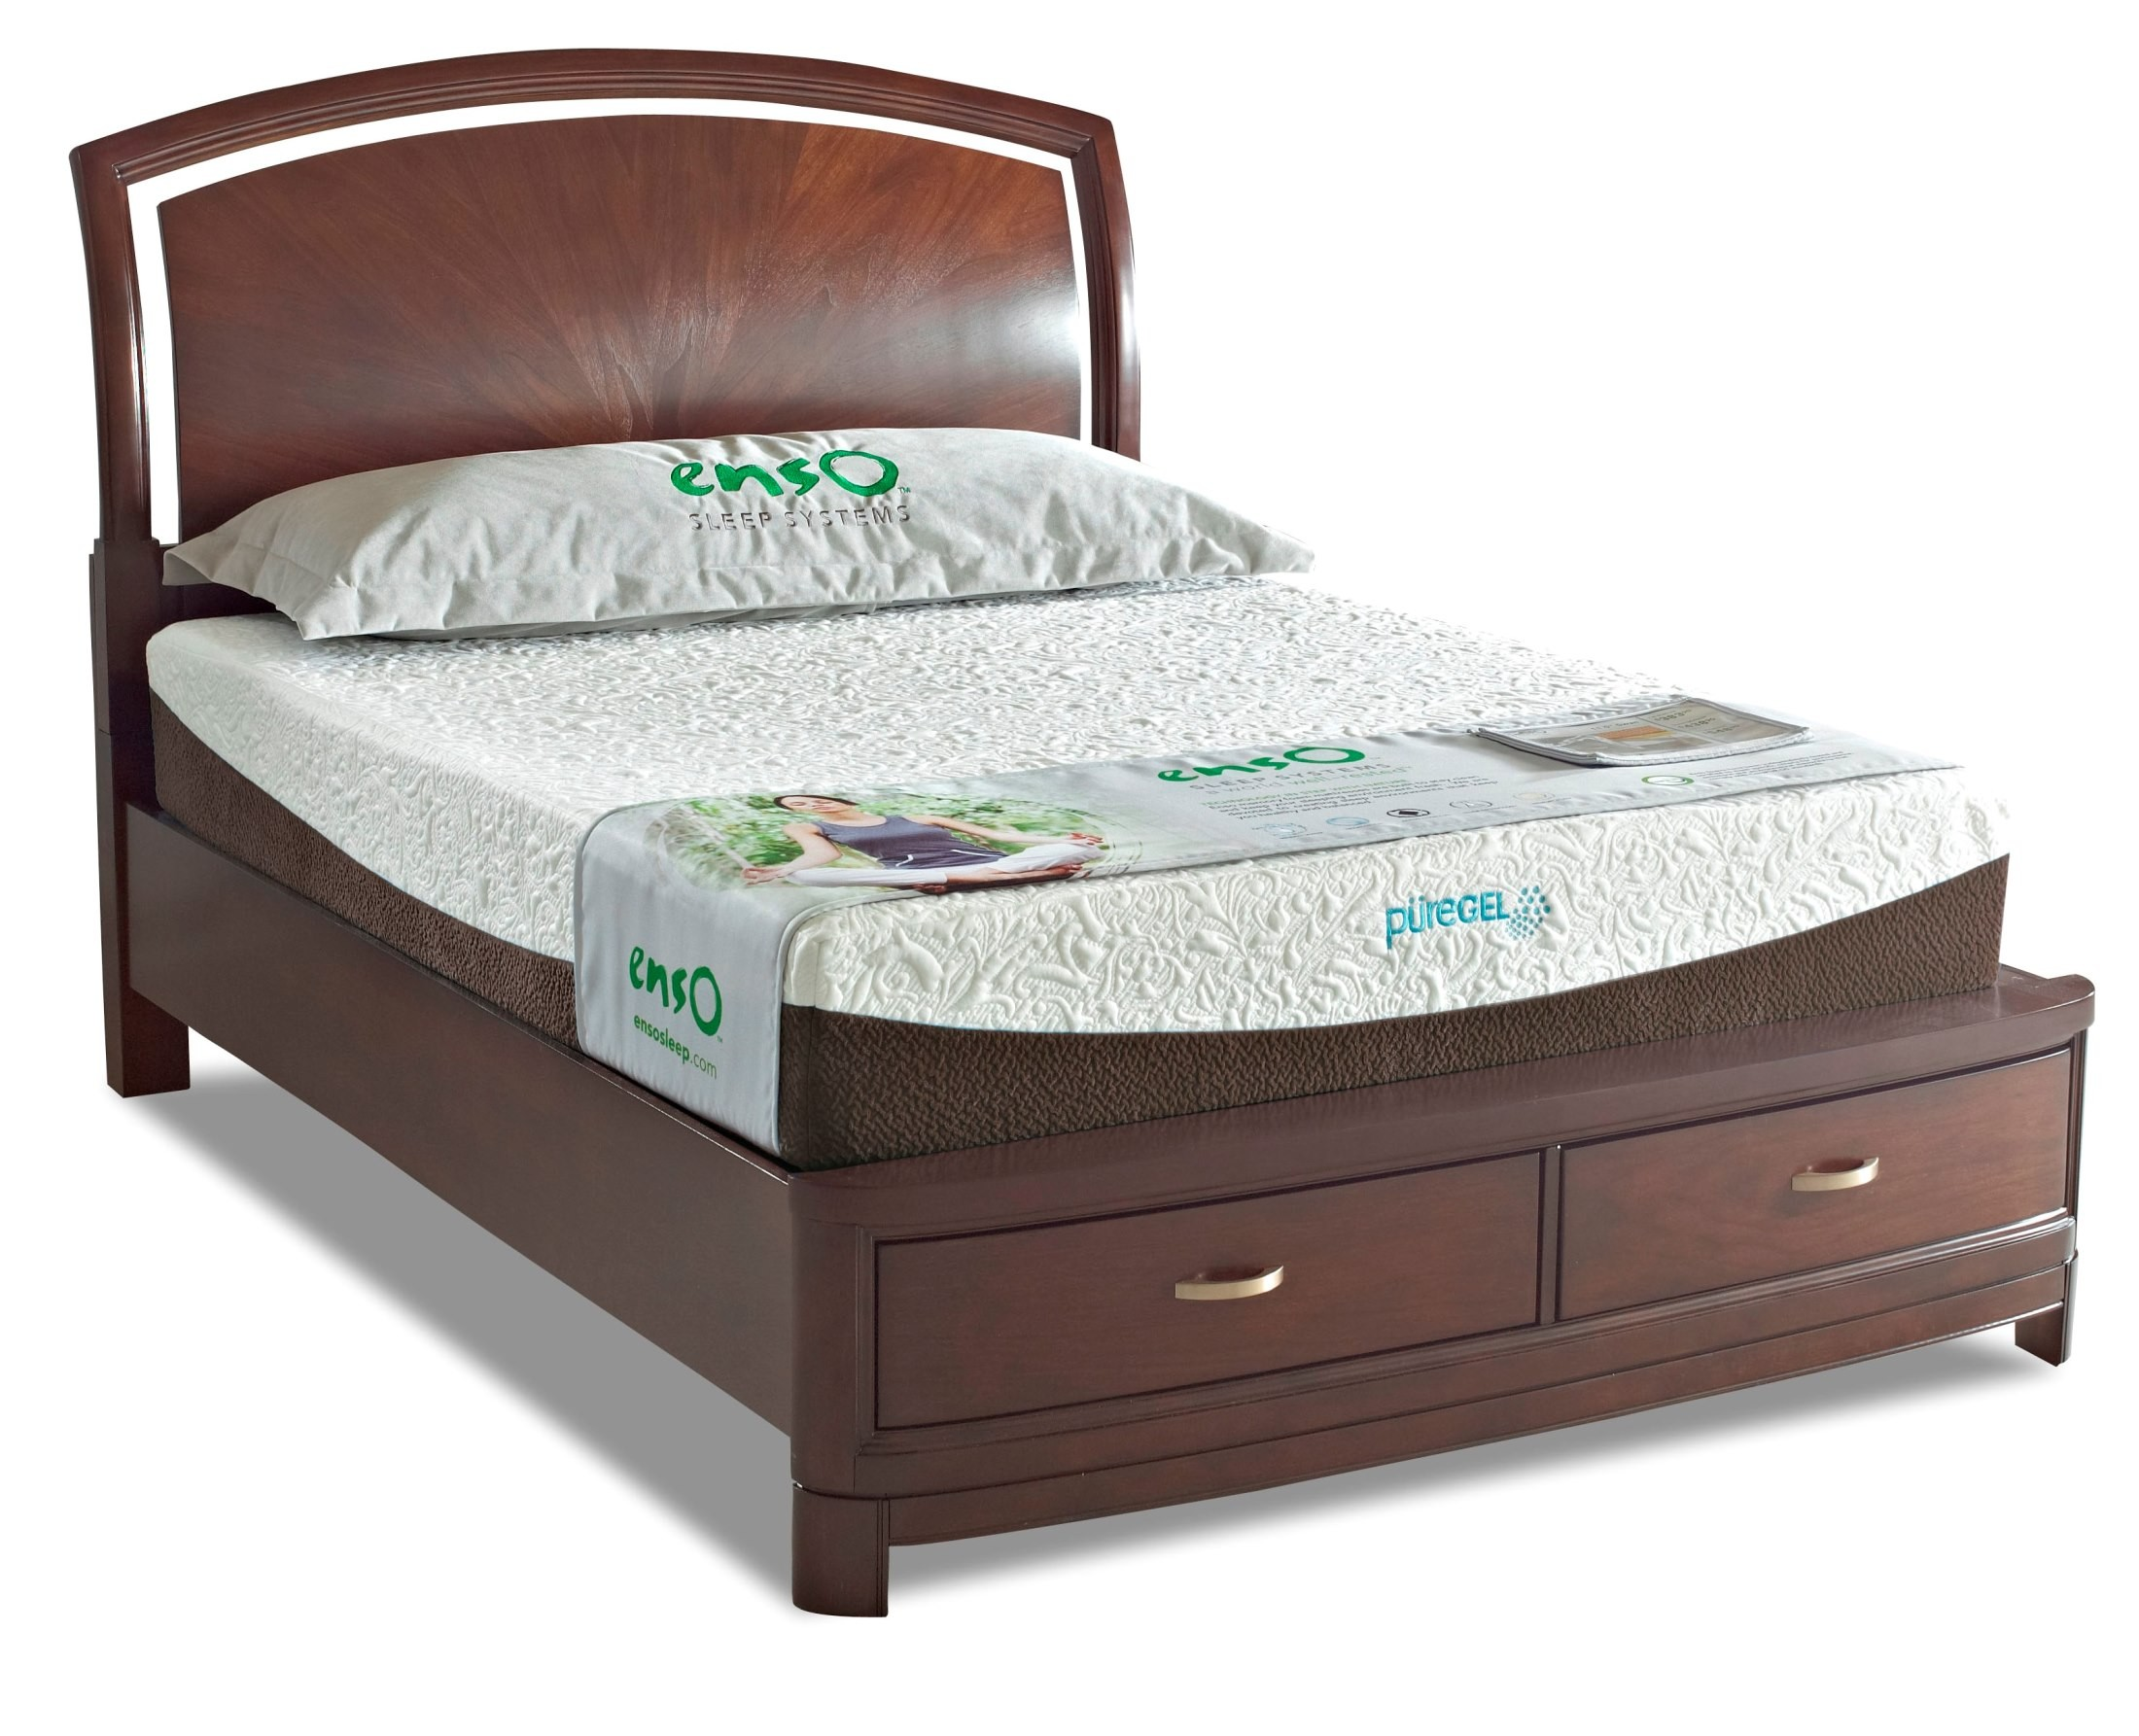 Denali 10 Memory Foam Twin Size Mattress From Klaussner Denalittmat Coleman Furniture